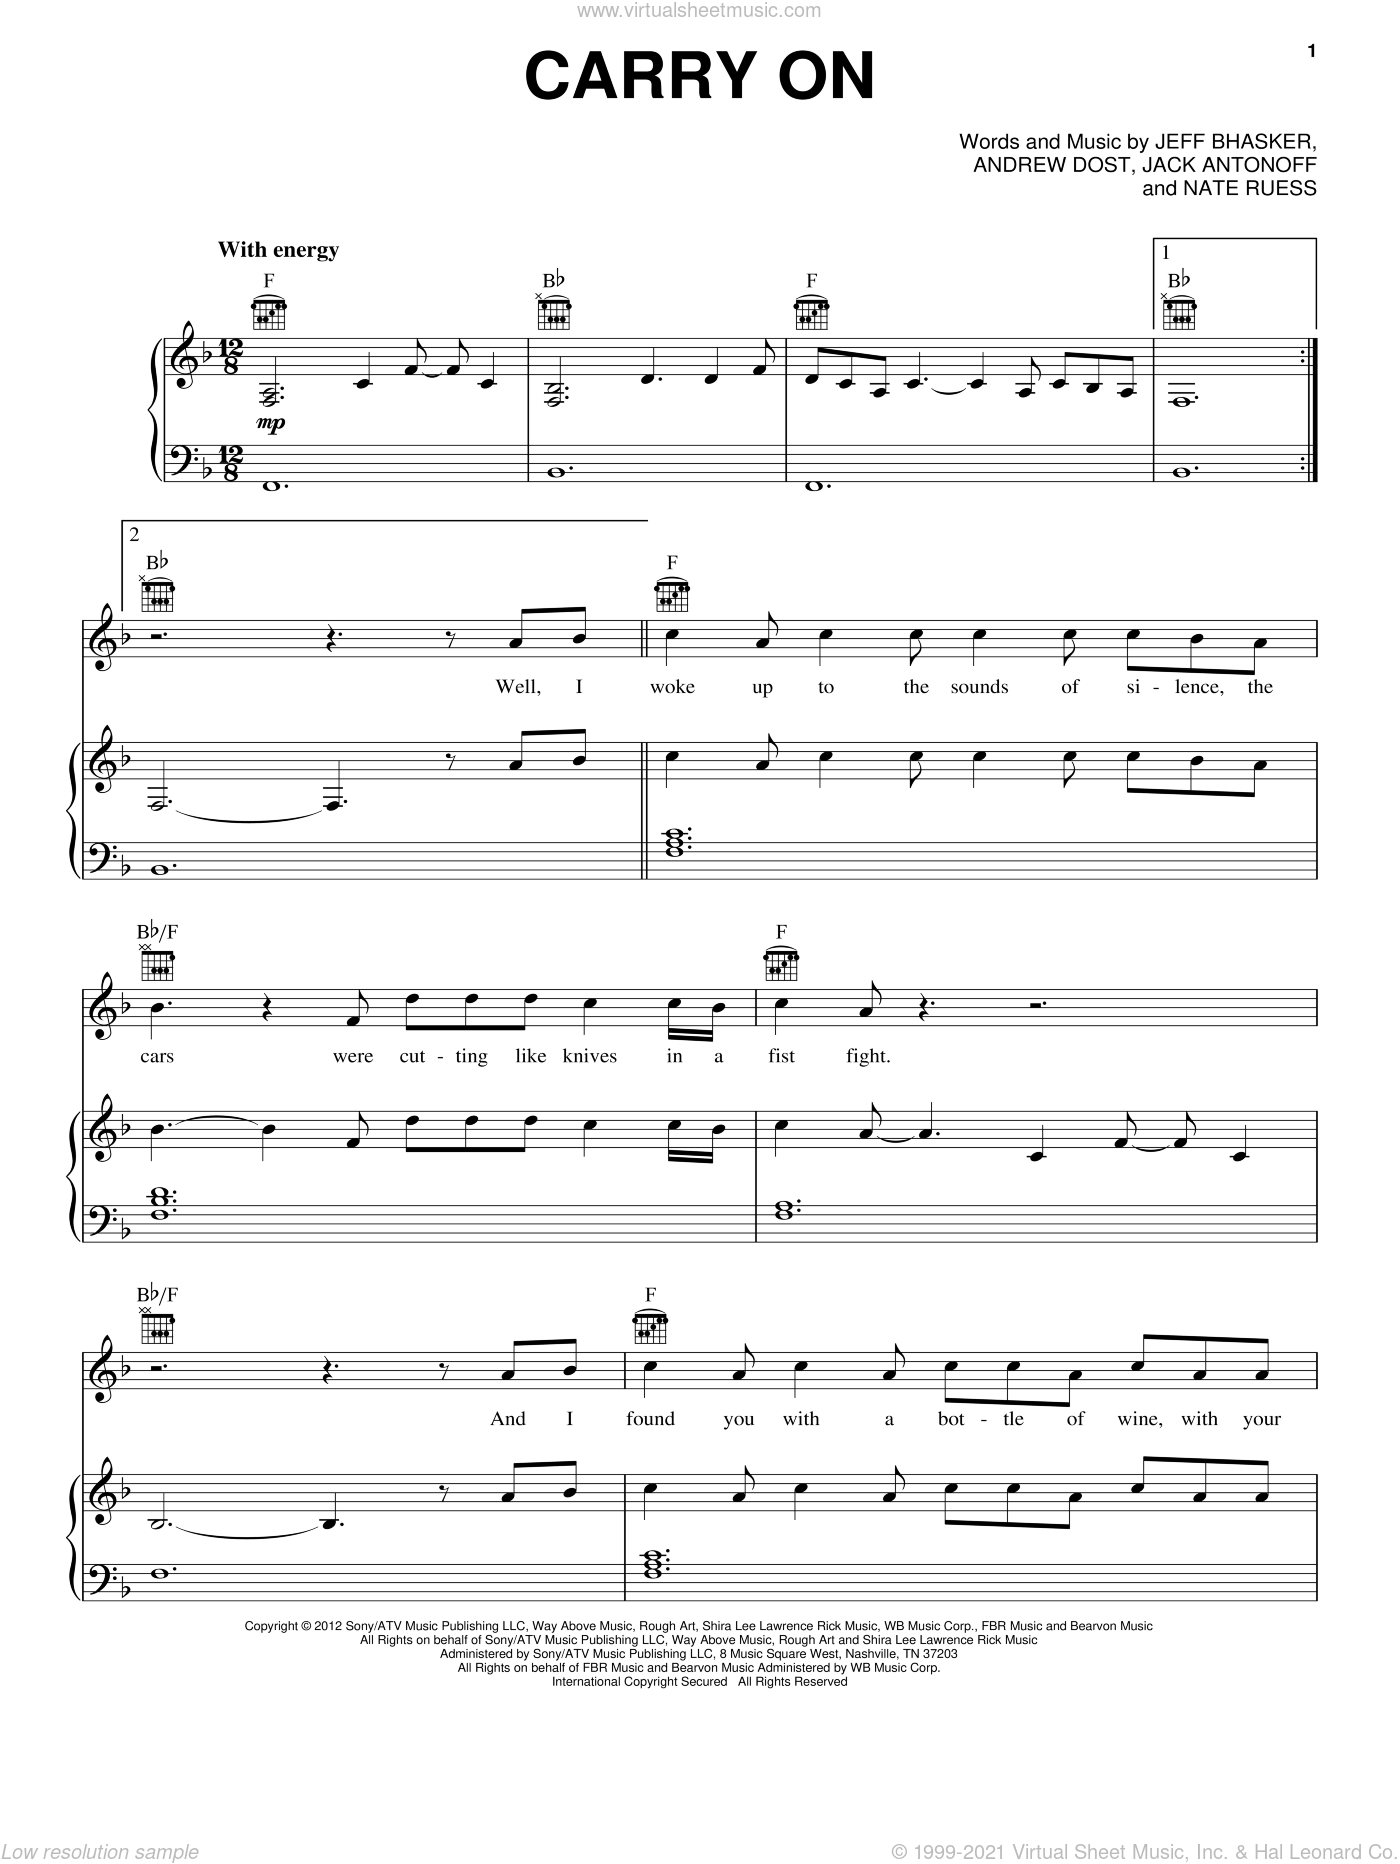 Carry On sheet music for voice, piano or guitar by fun.